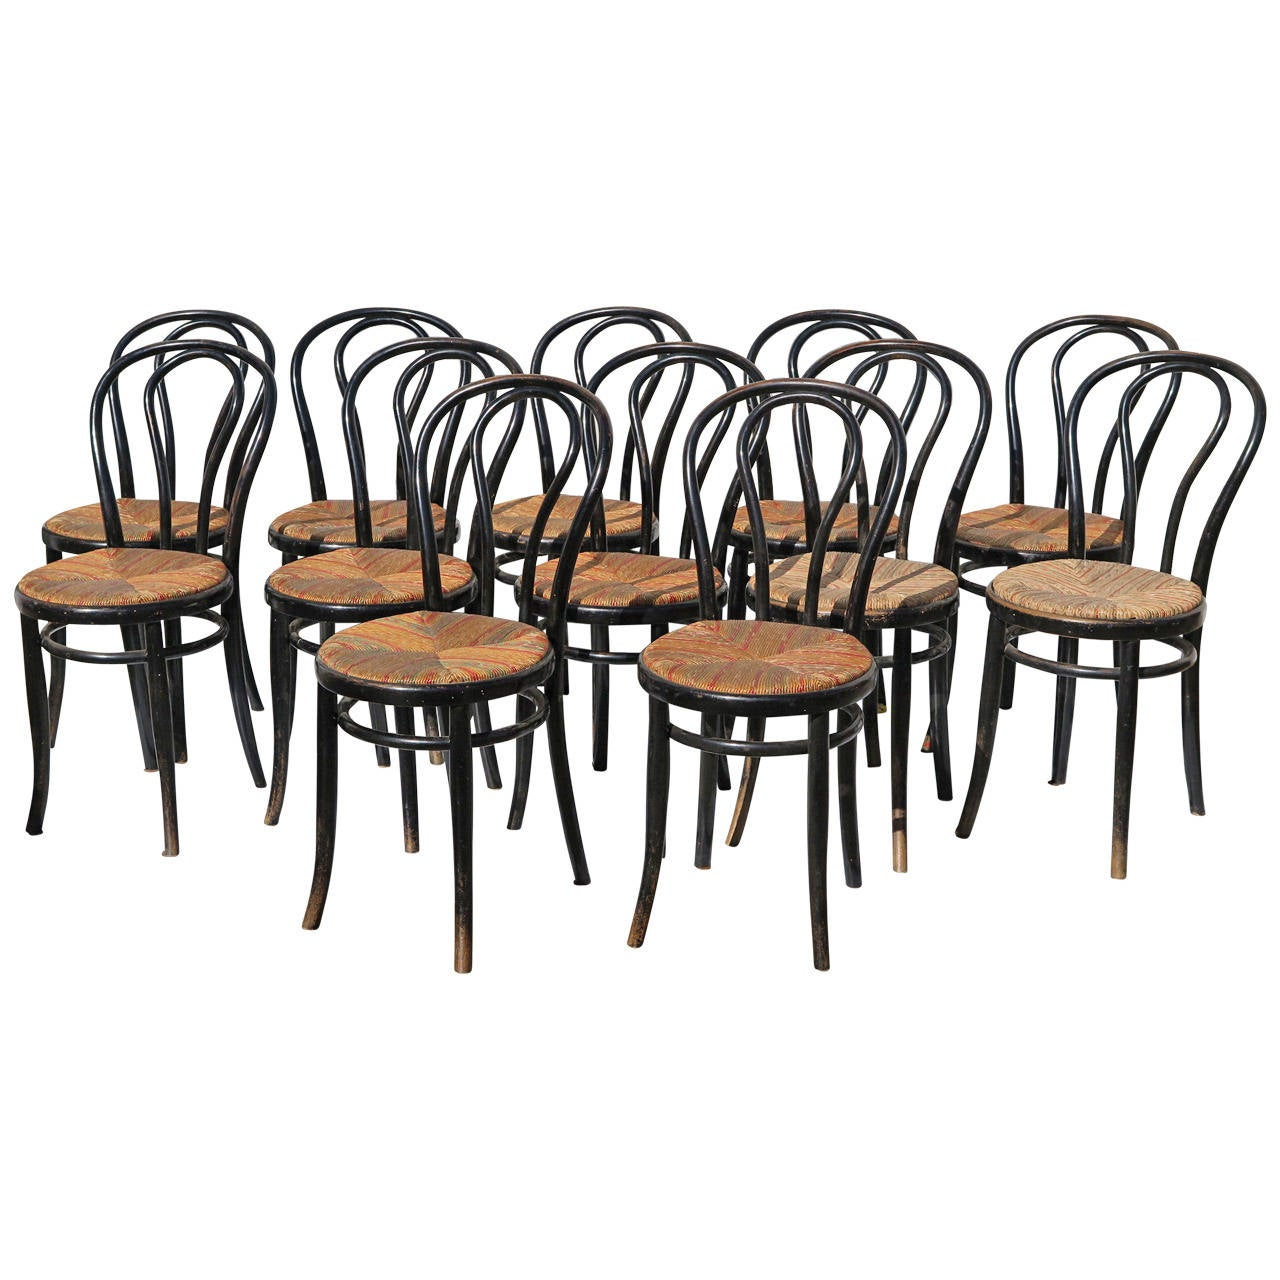 French Bistro Chairs SIX AVAILABLE For Sale at 1stdibs : 1427422l from www.1stdibs.com size 1280 x 1280 jpeg 158kB